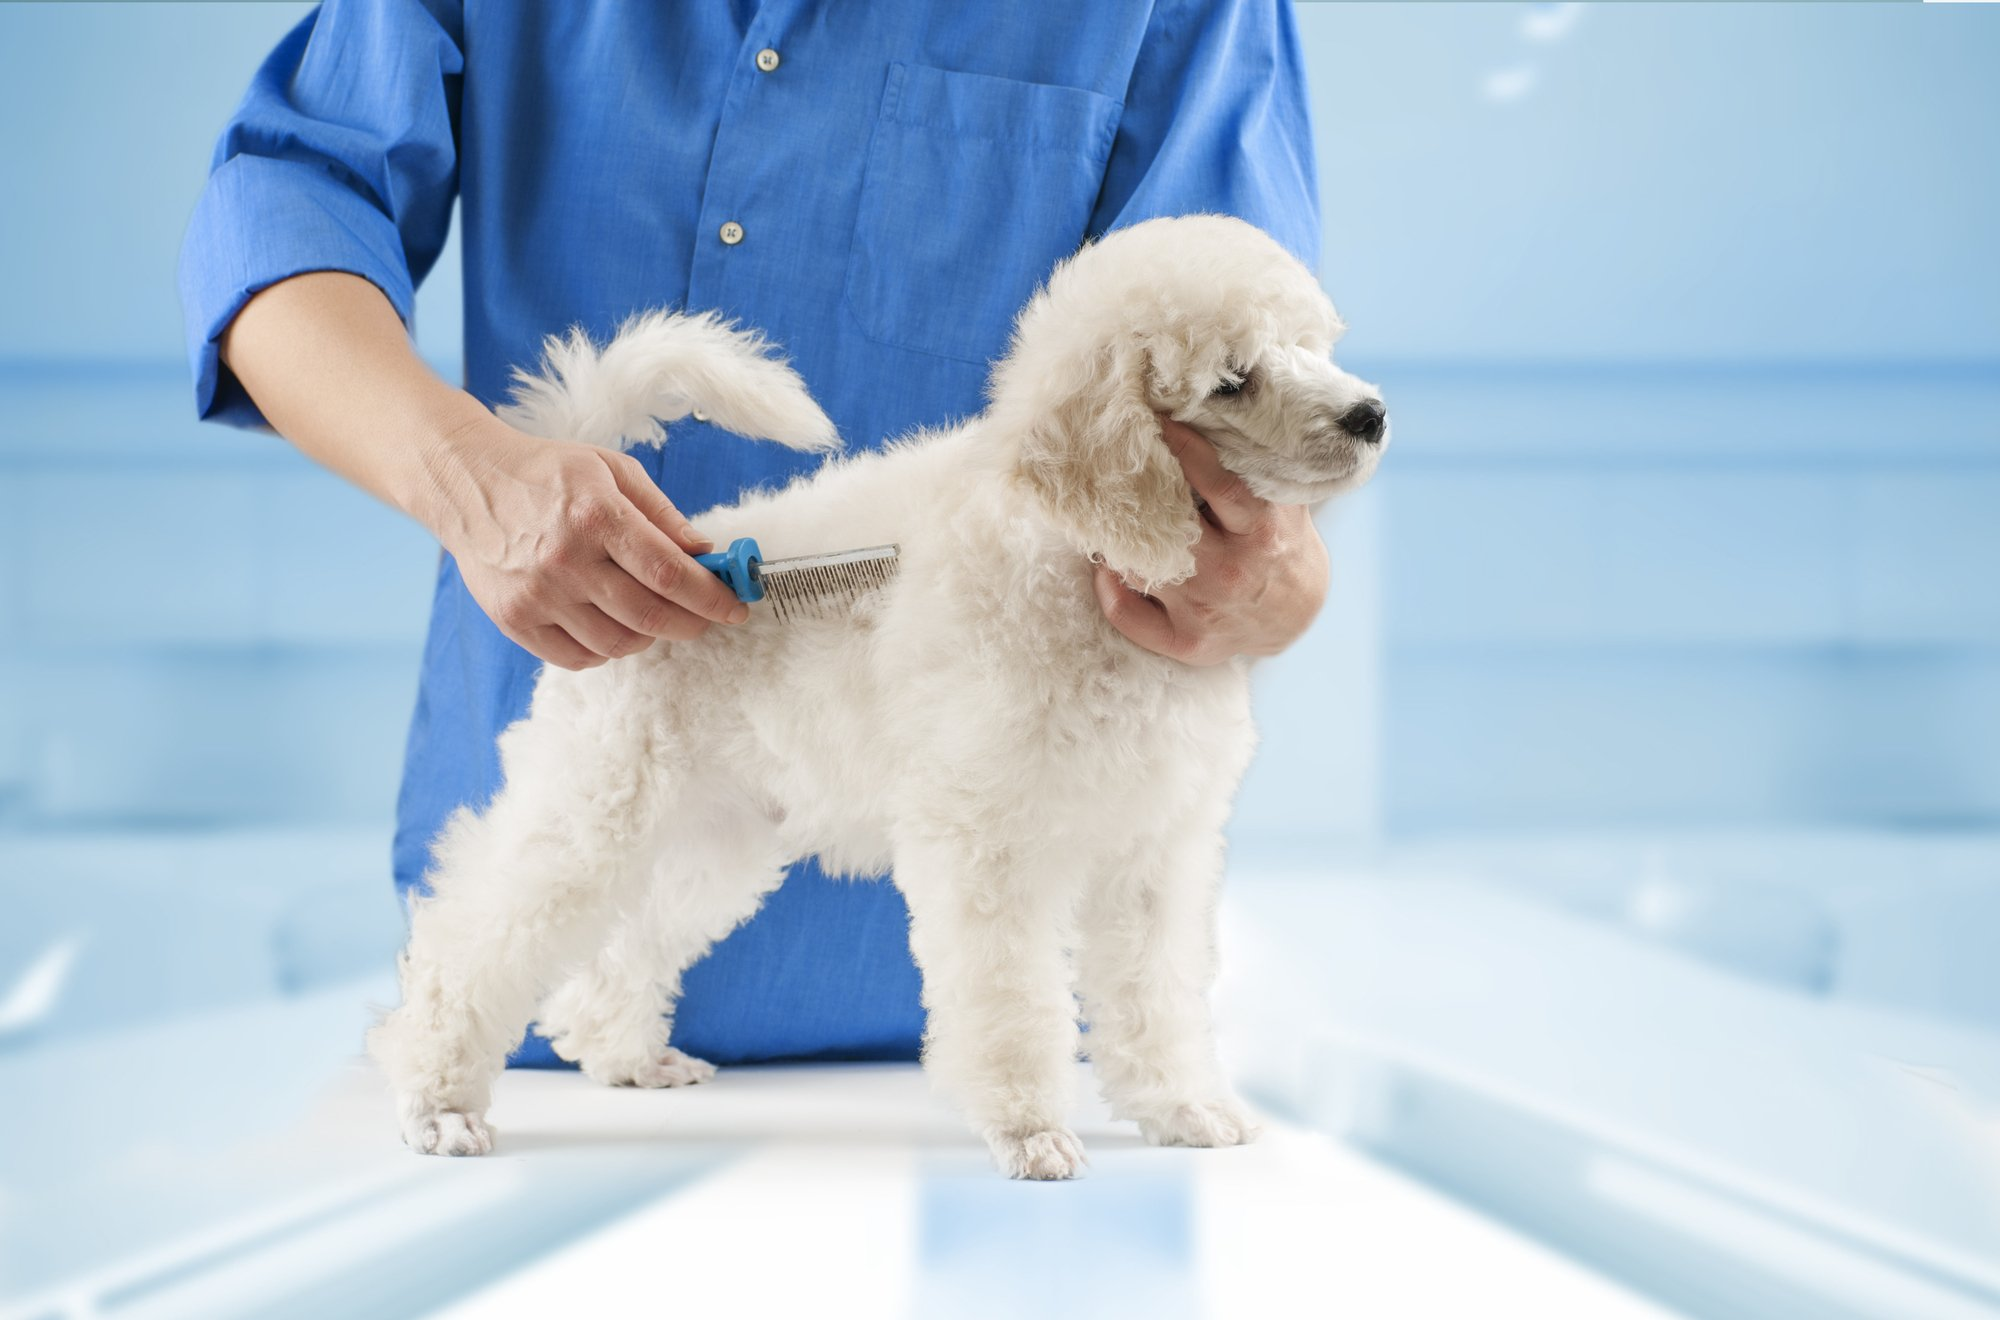 White Poodle getting groomed at a dog salon